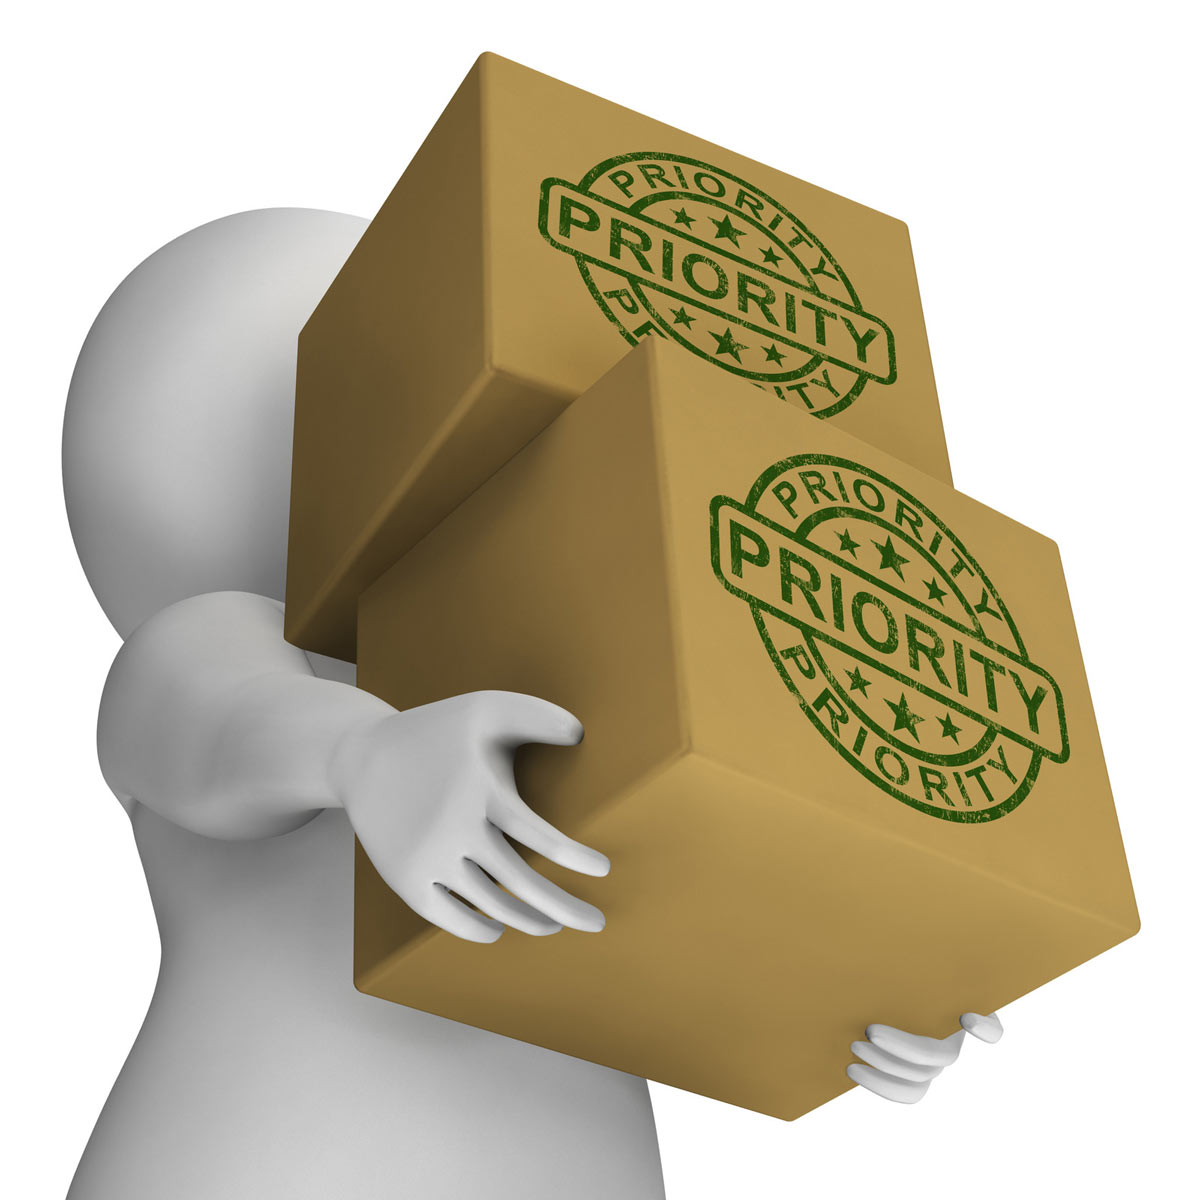 Figuring of a gig delivery worker holding boxes stamped Priority.